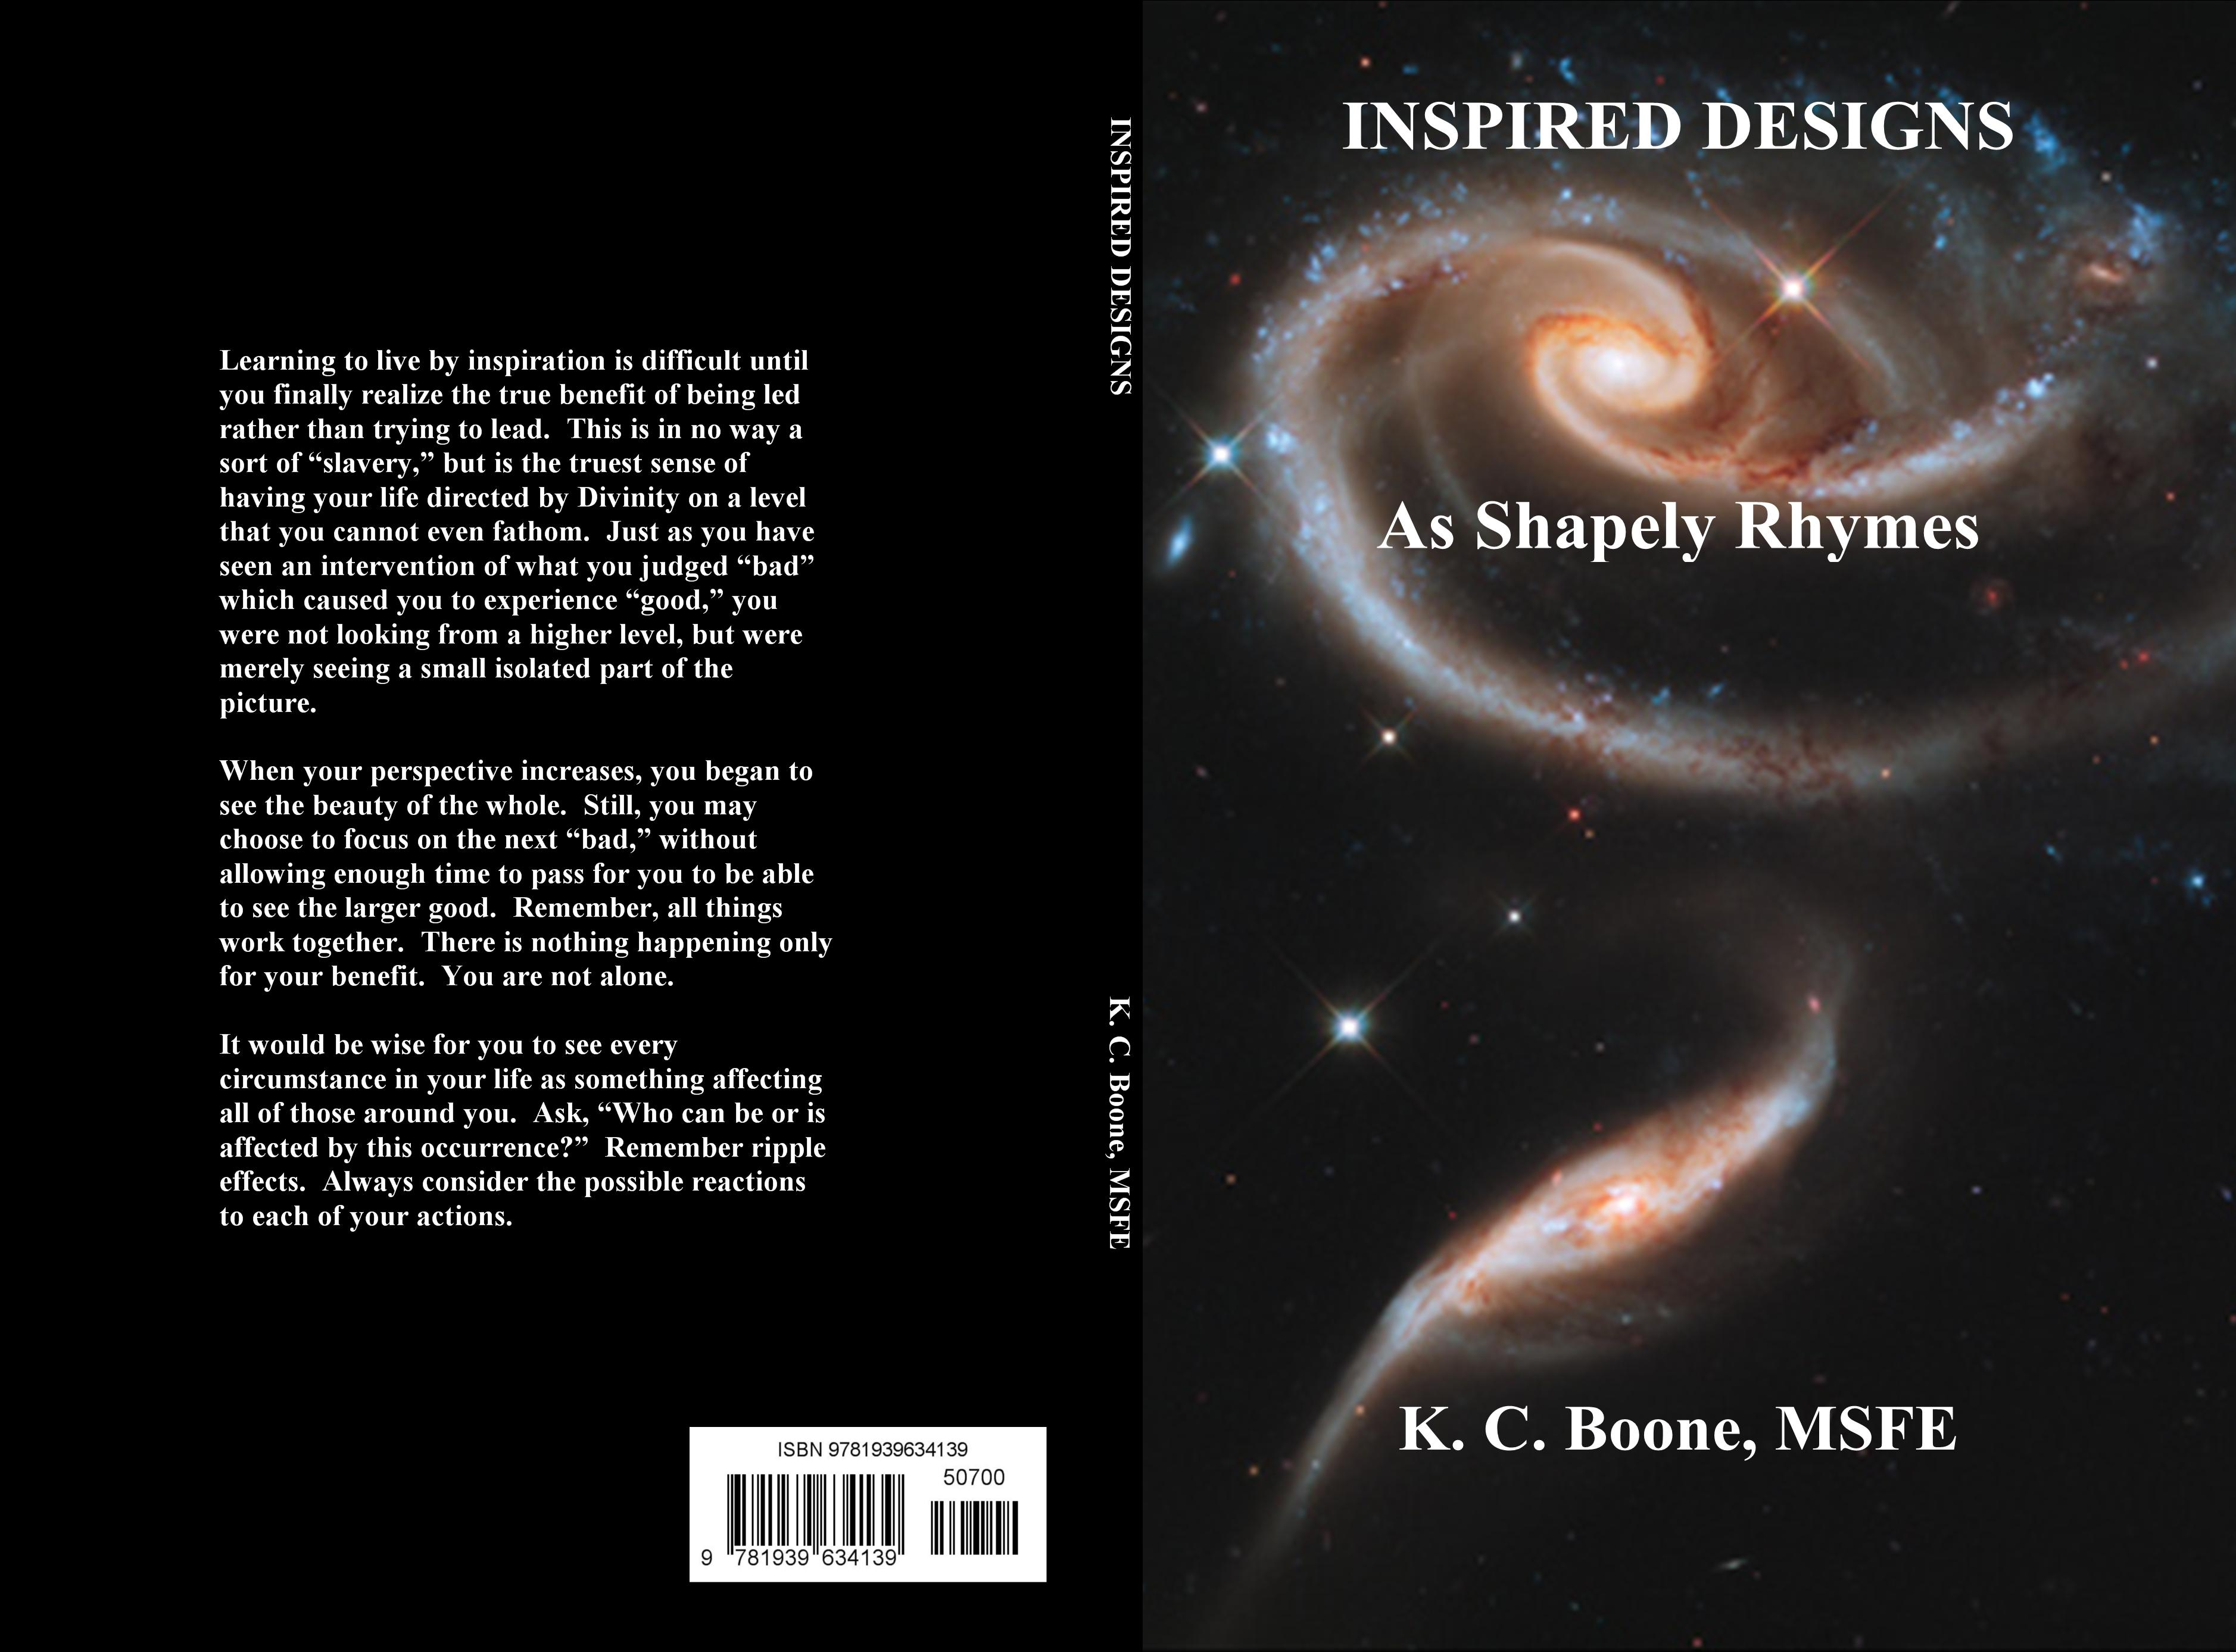 INSPIRED DESIGNS As Shapely Rhymes cover image